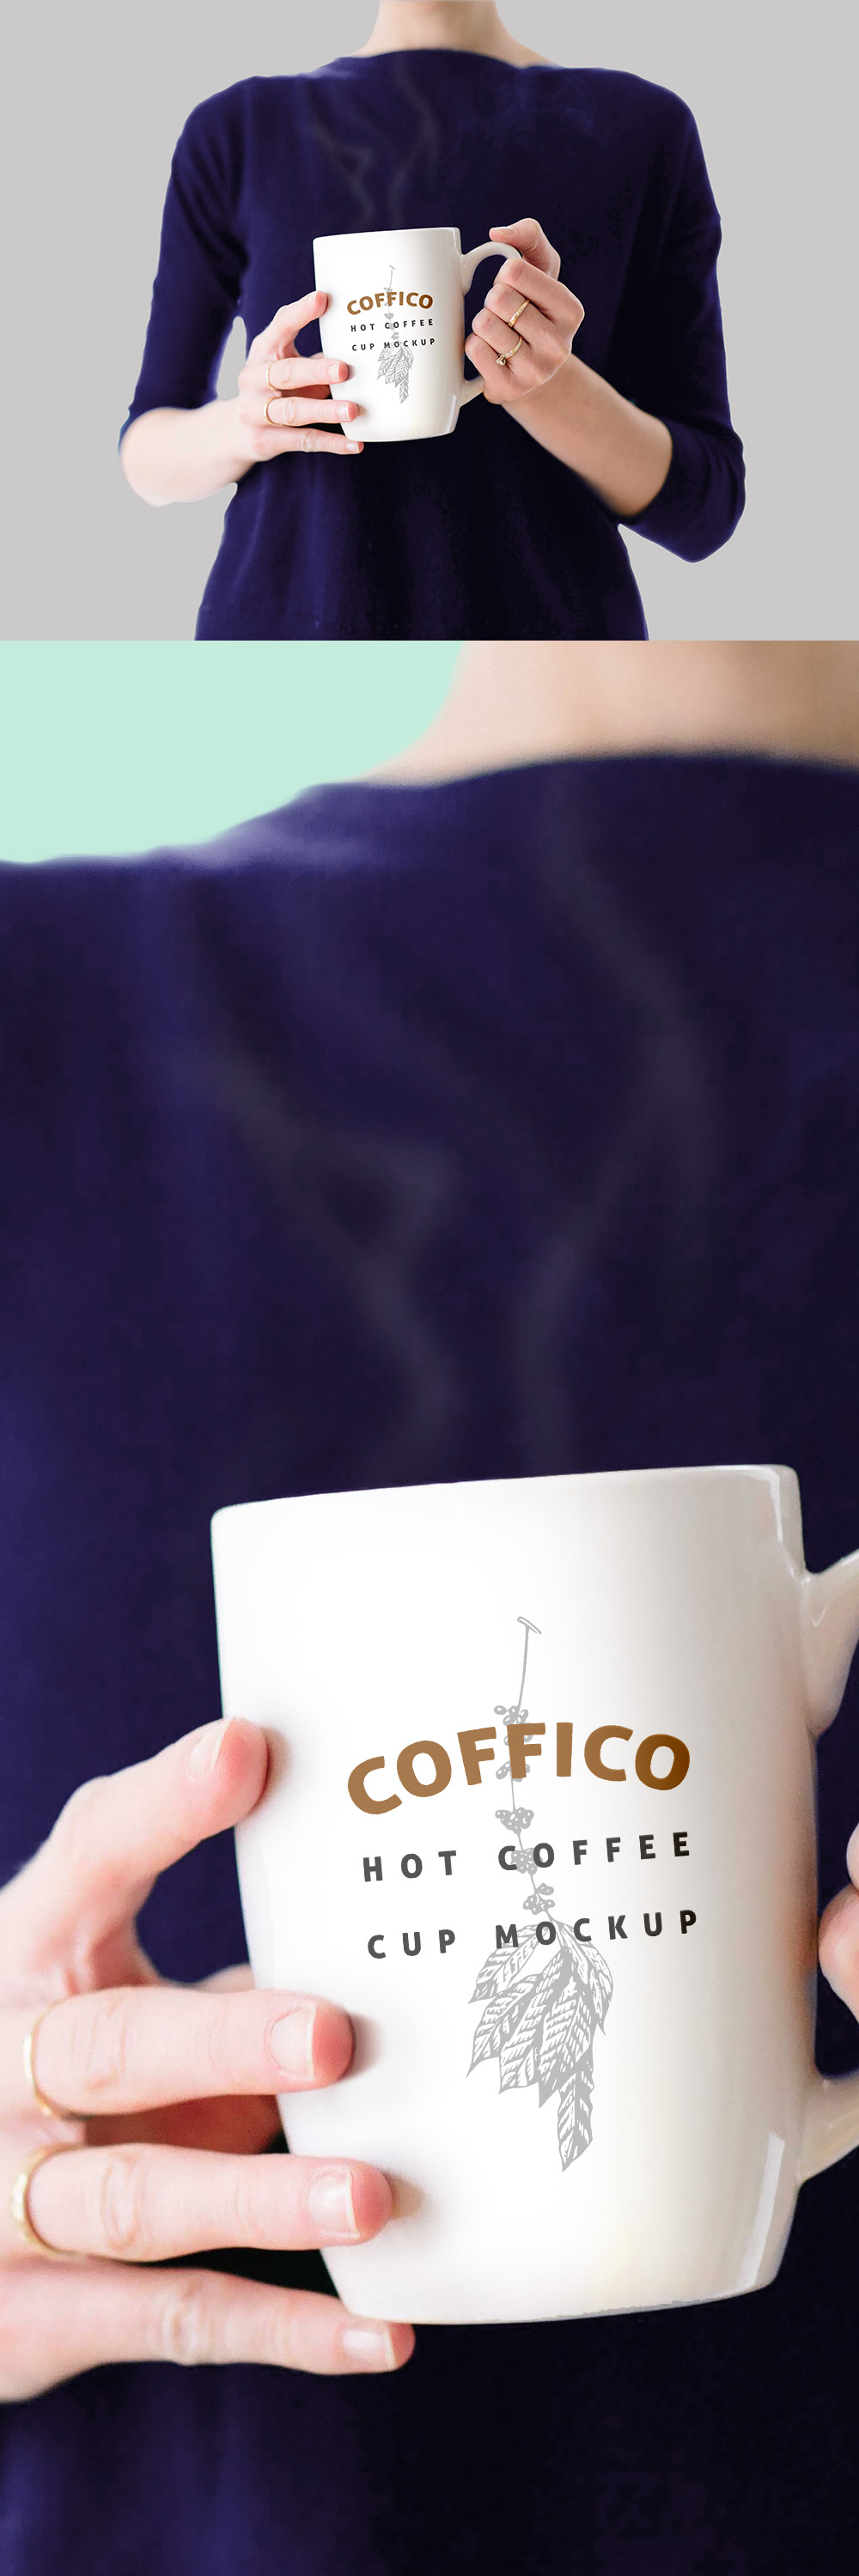 Woman Holding Coffee Cup Mockup